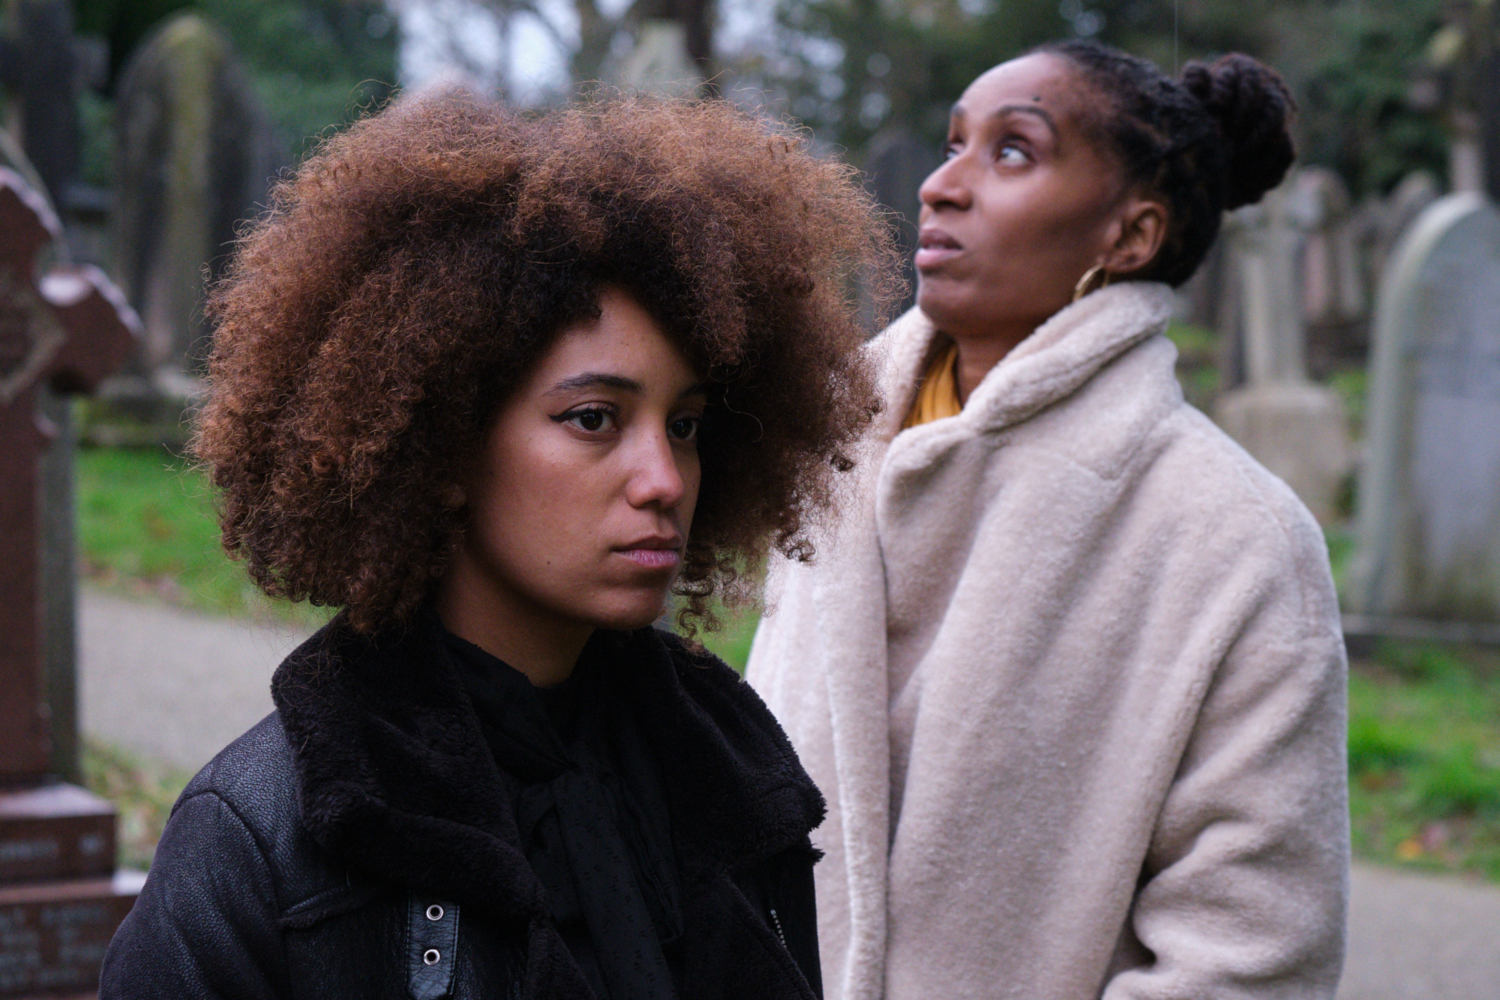 Production Still on the set of Voyager short film. Photo's by Matt Towers. Directed by Liam Calvert. Starring Sophie Delora Jones and Fredericka Charles